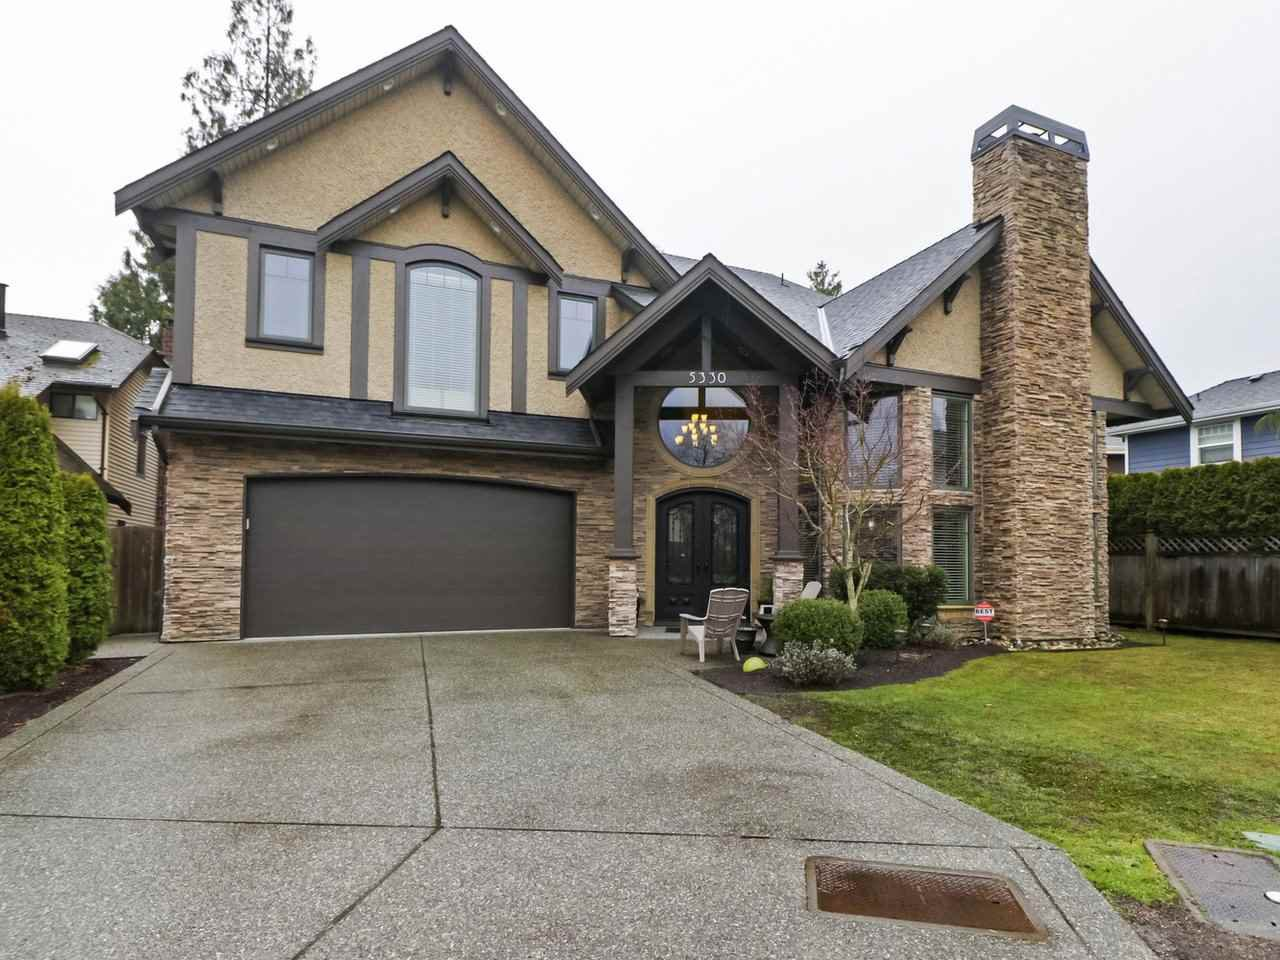 Main Photo: 5330 BENTLEY CRESCENT in Delta: Hawthorne House for sale (Ladner)  : MLS®# R2447907